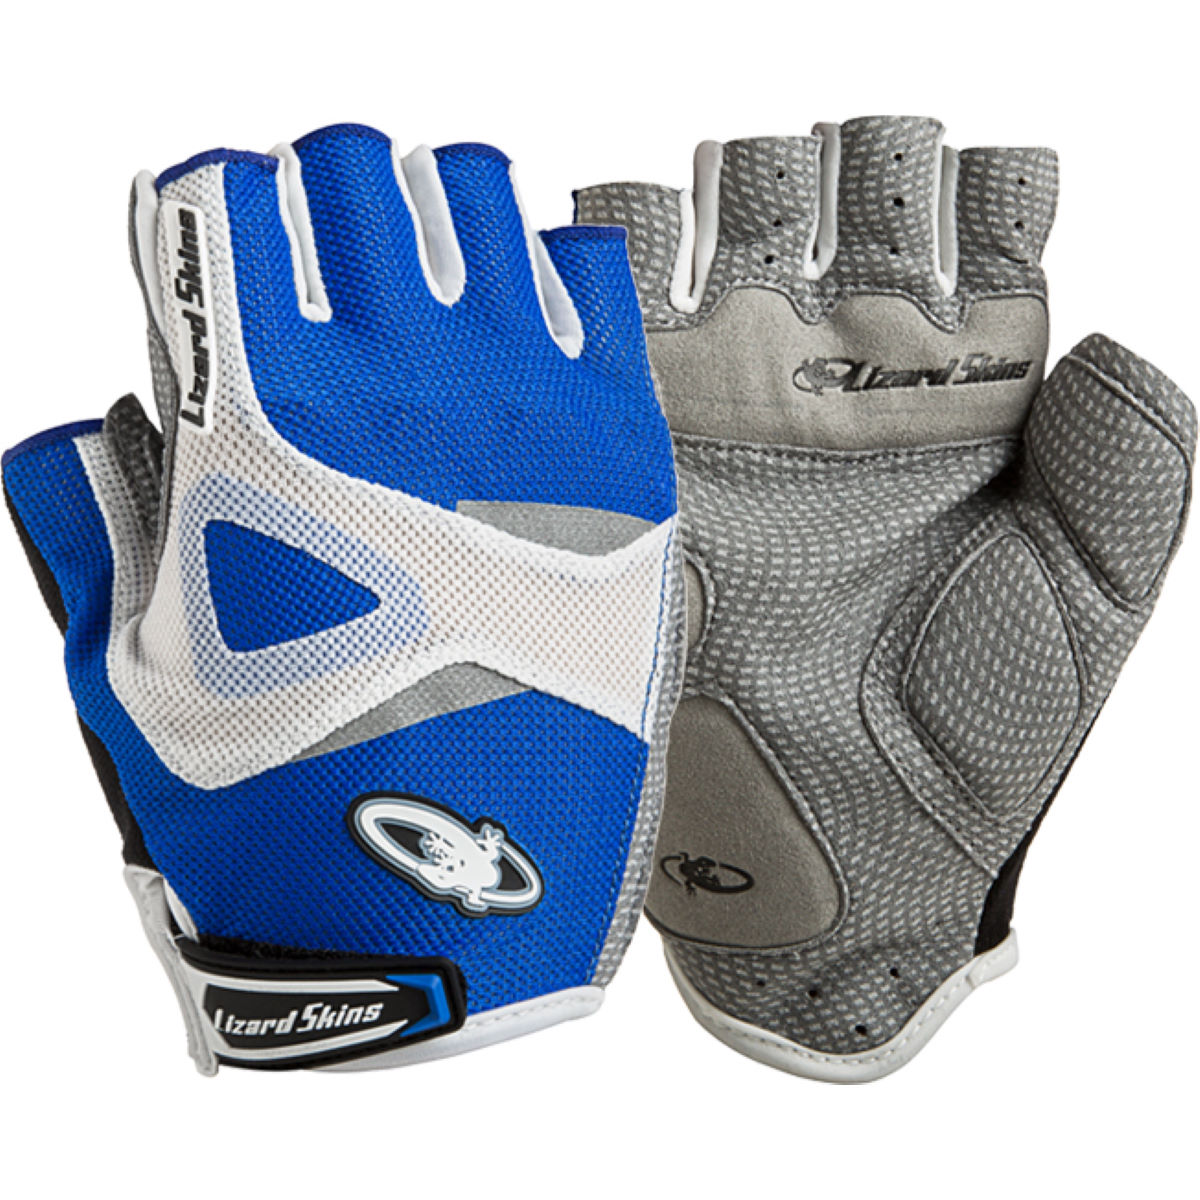 Lizard Skins La Sal 2.0 Short Finger Gloves